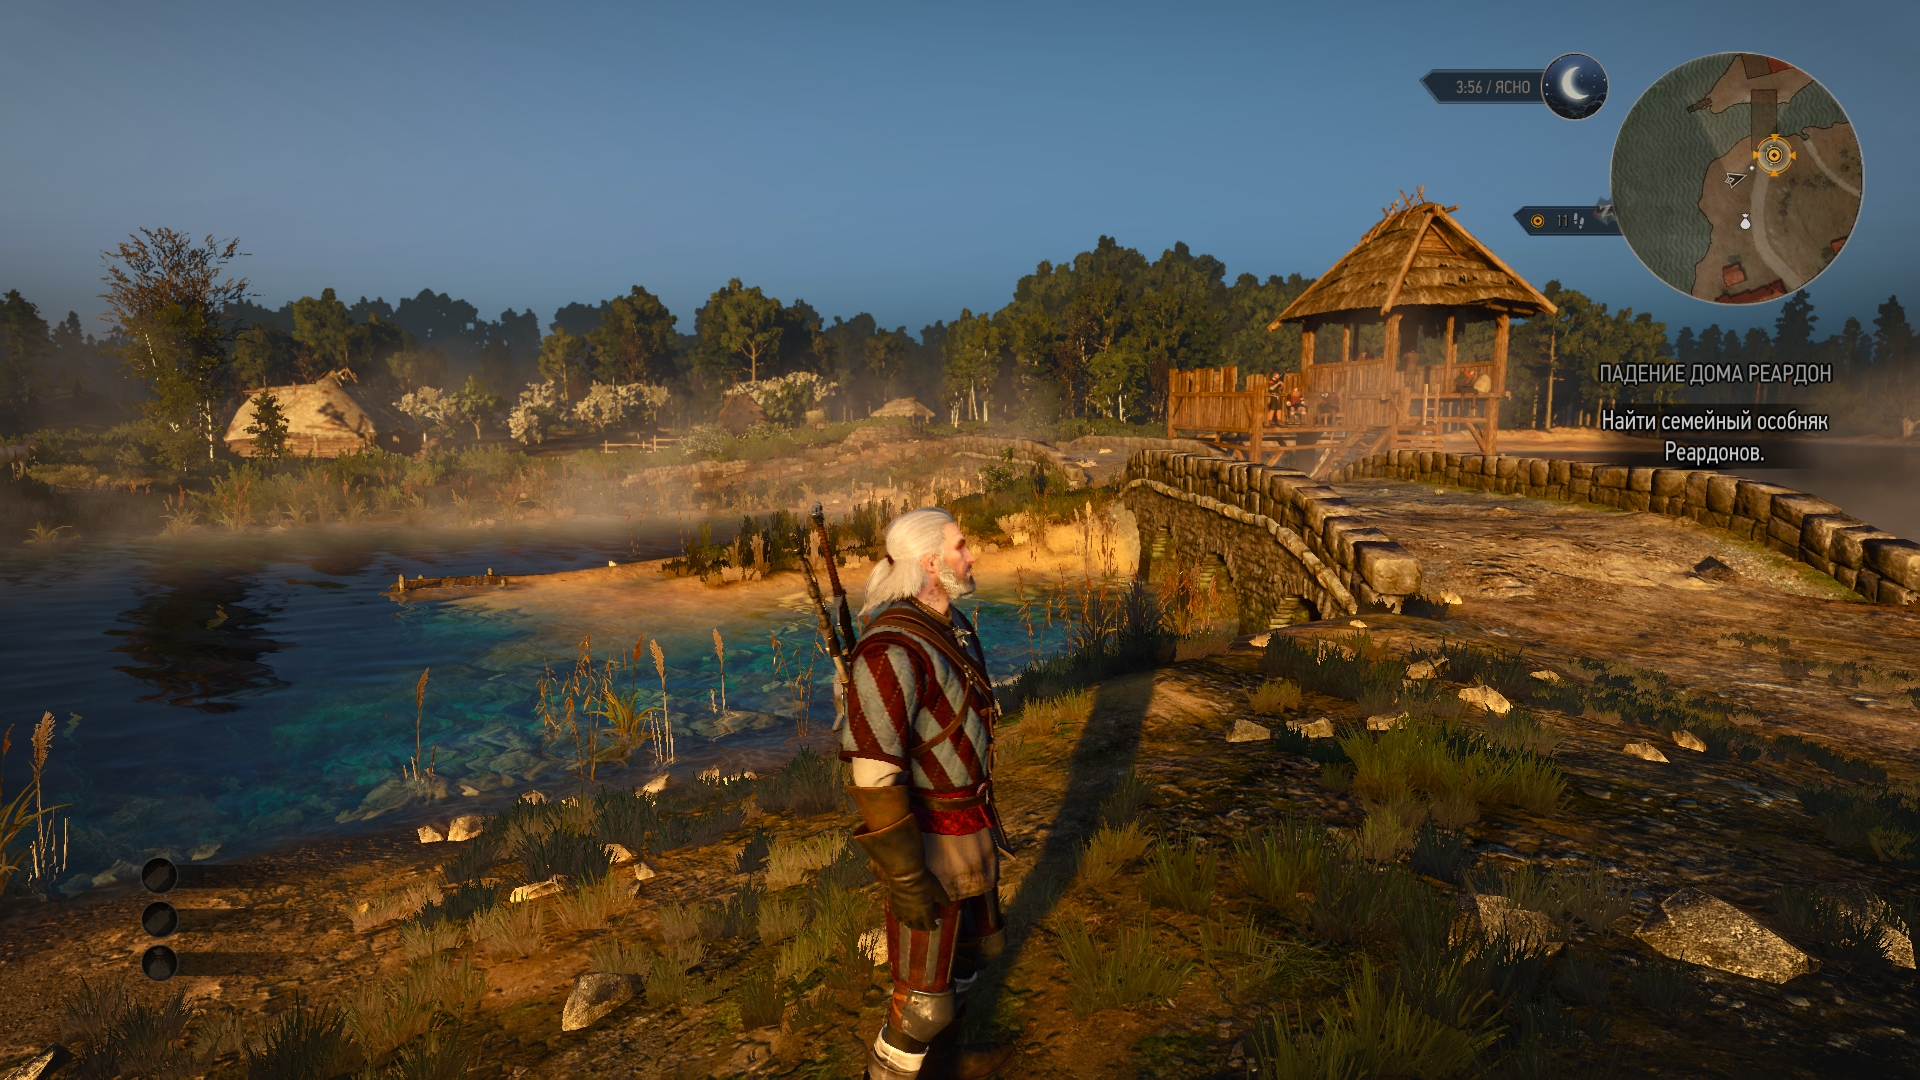 witcher3 2016-06-15 07-10-21-22.jpg - Witcher 3: Wild Hunt, the